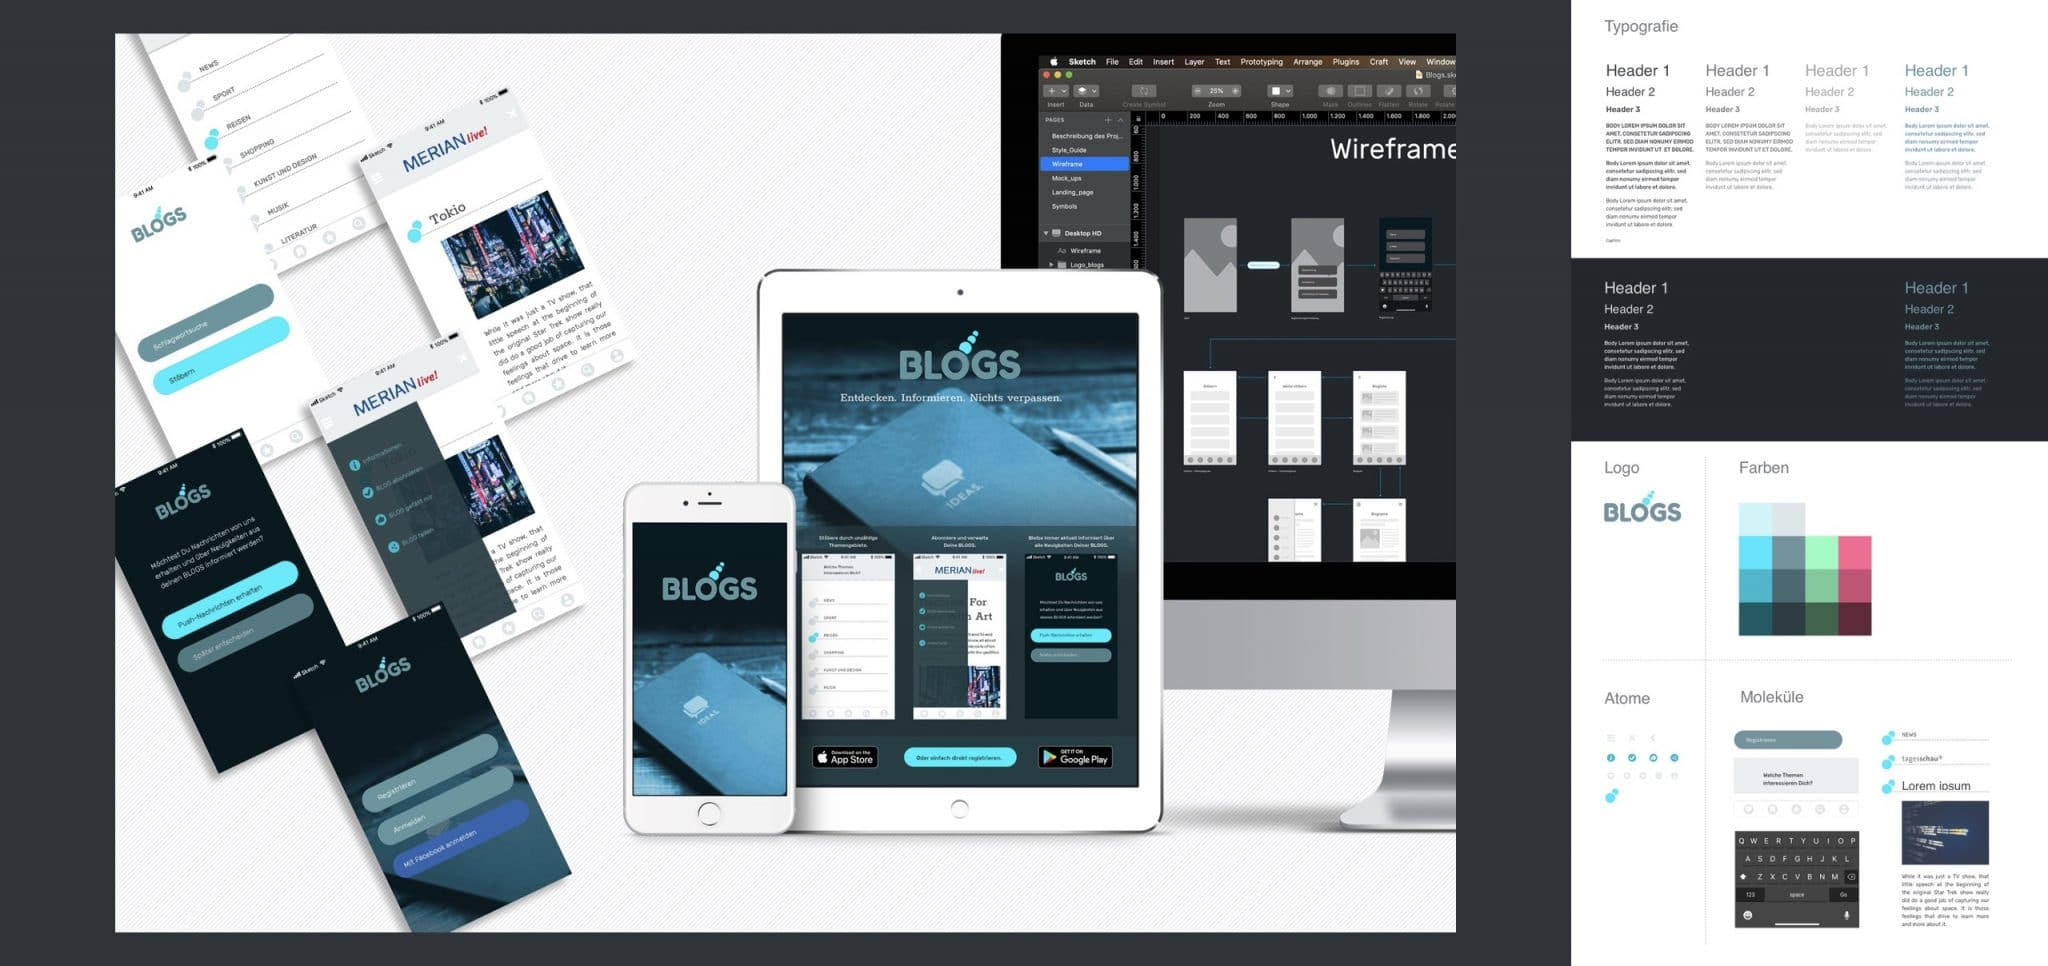 Sketch Mockup User Interface Design